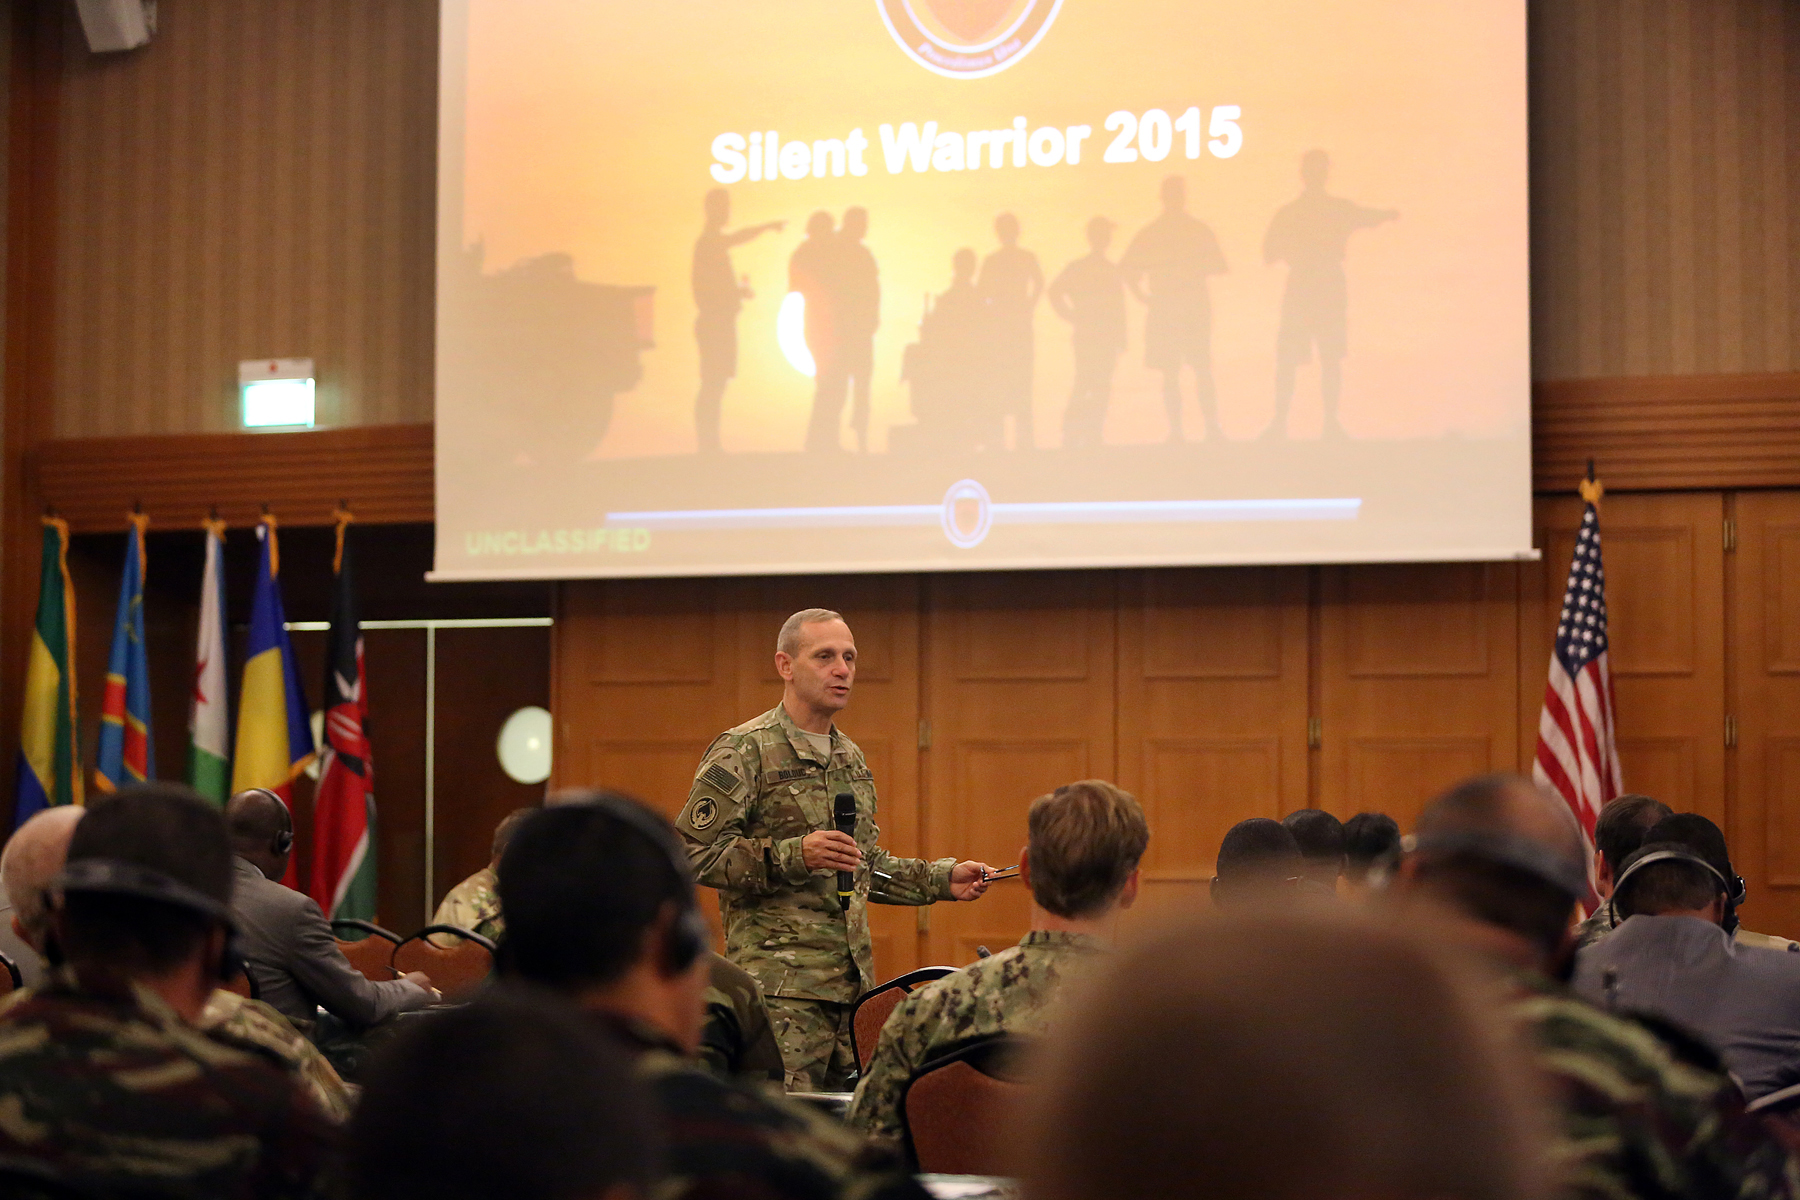 U.S. Army Brig. Gen. Donald Bolduc, Special Operations Command – Africa Commander, addresses U.S. and African participants at exercise Silent Warrior 16, held from Nov. 9-13, in Garmisch, Germany. Silent Warrior 16 brought together Special Operations Forces and representatives from 19 African states to discuss cooperative strategies to combat violent extremist organizations in the region. (Special Operations Command Africa photo by Sgt. 1st Class Anthony L. Taylor/Released)